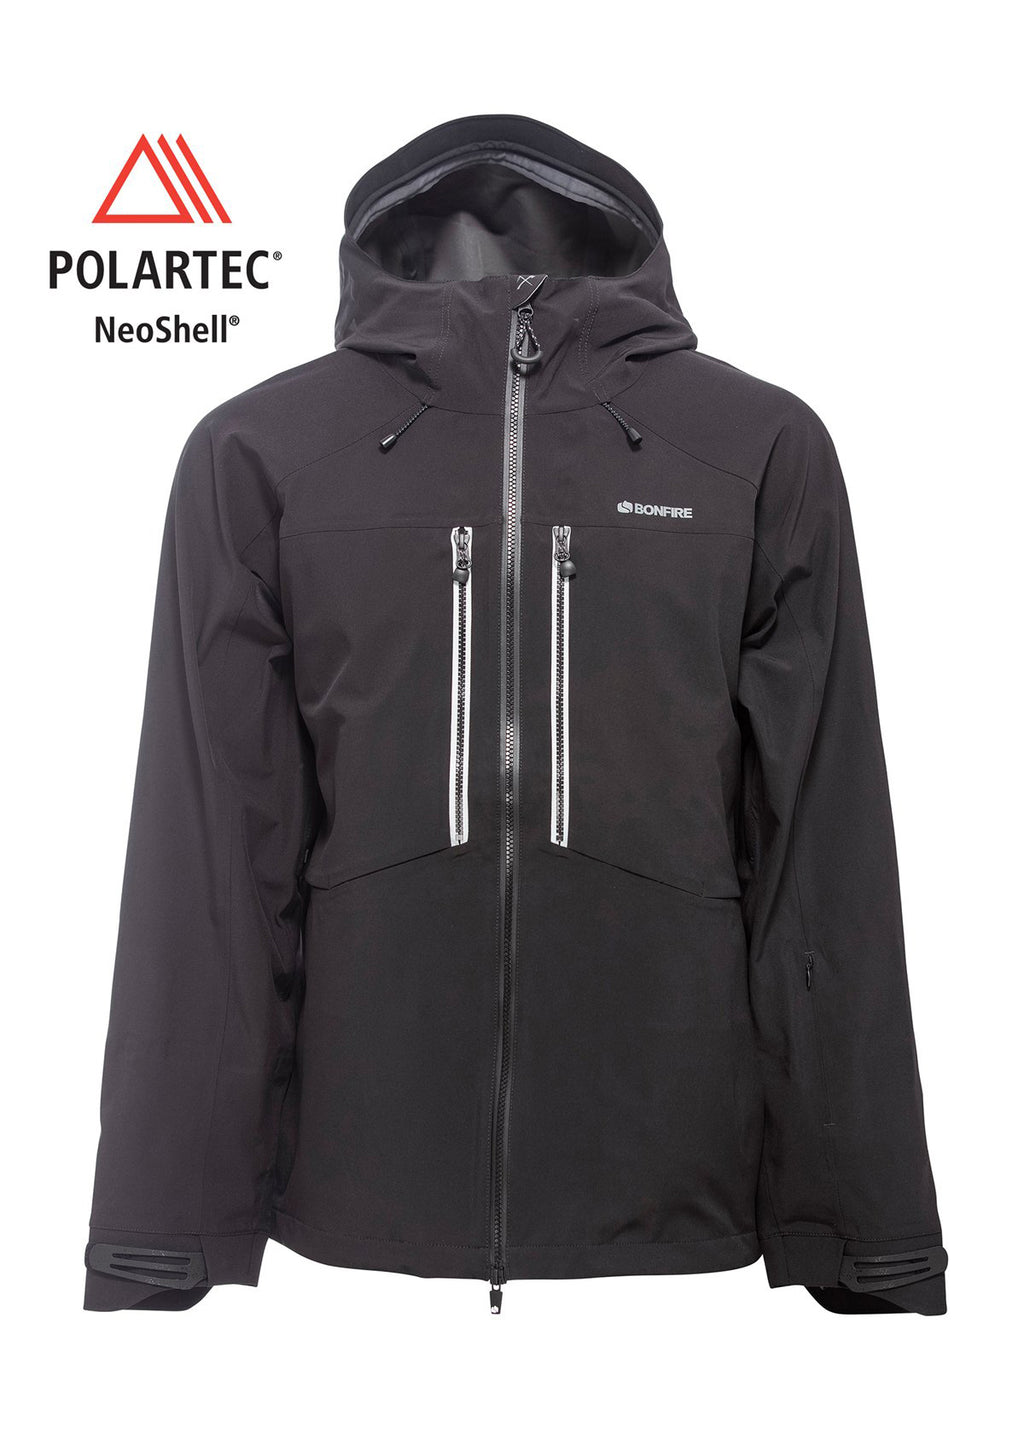 APEX POLARTEC NEOSHELL 3L STRETCH SHELL JACKET